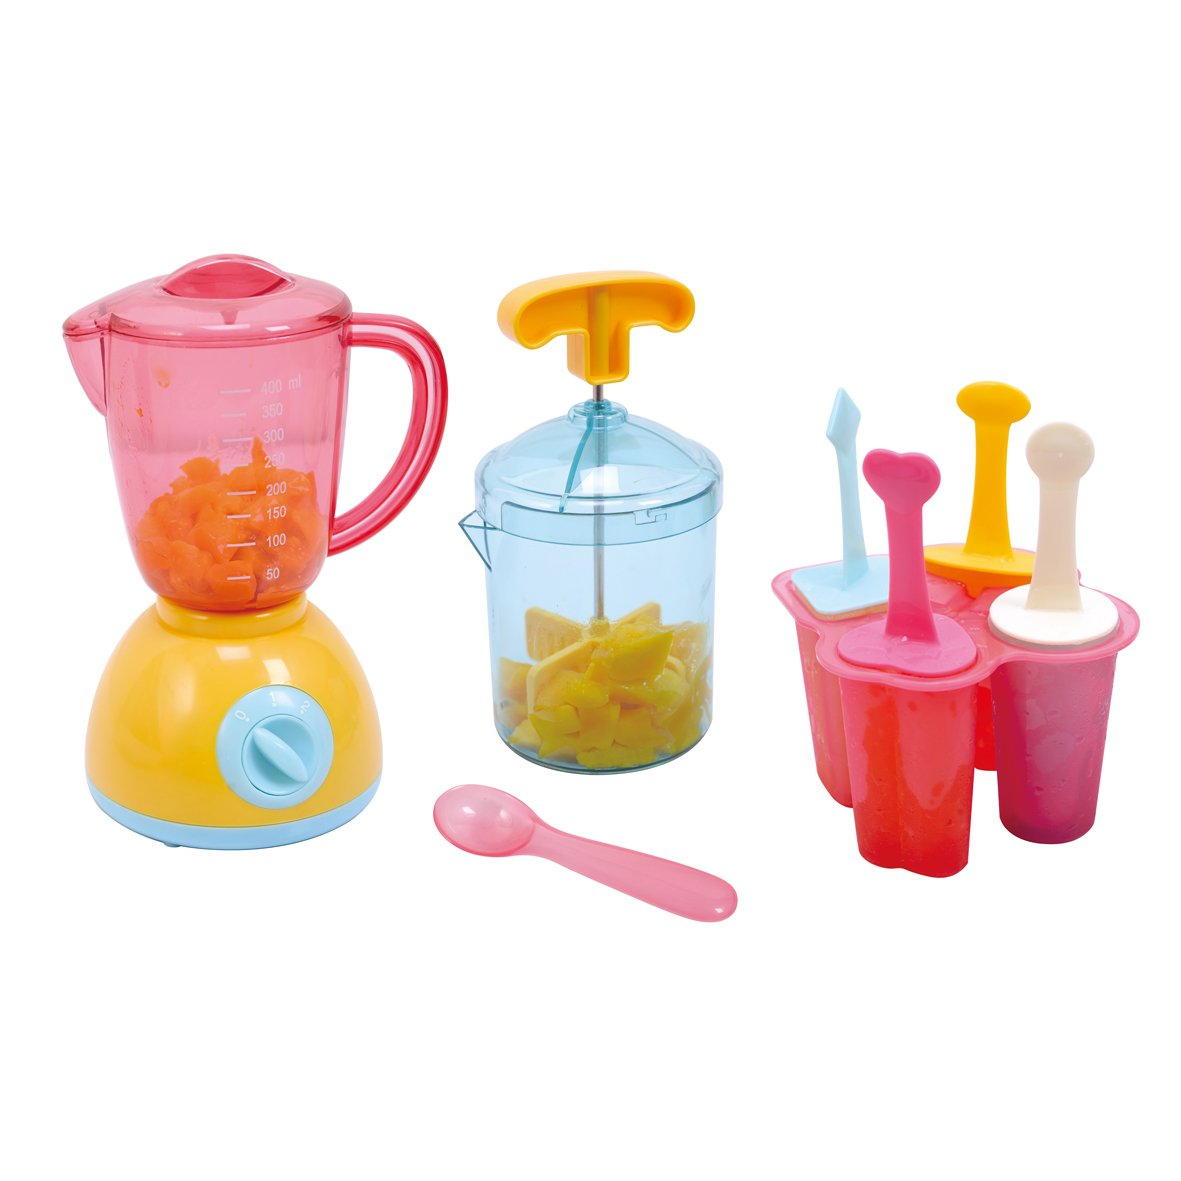 PlayGo My Ice Works 4 Set Shaped ICES Form with ICES Sticks Included Pretend Play for Toddlers & Kids by PlayGo